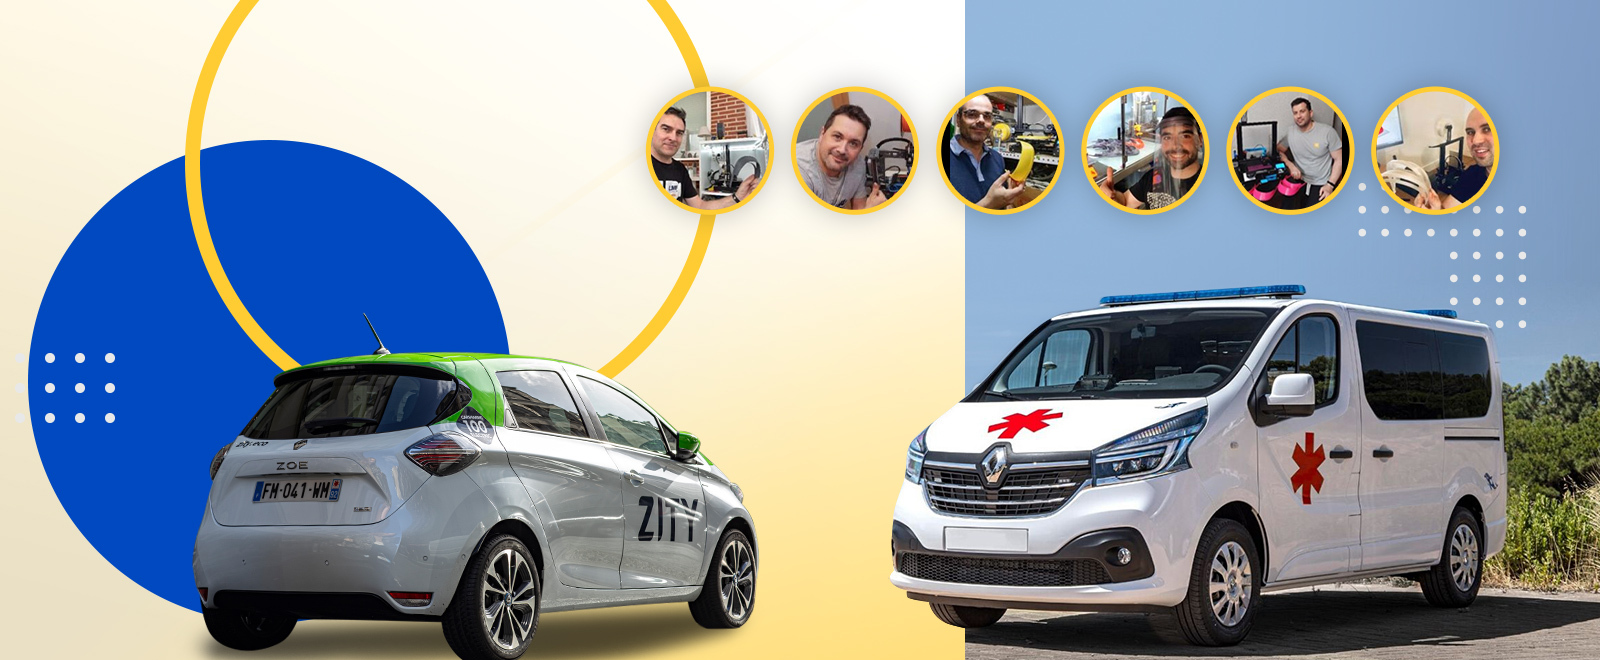 Groupe Renault's initiatives to help tackle the COVID-19 crisis